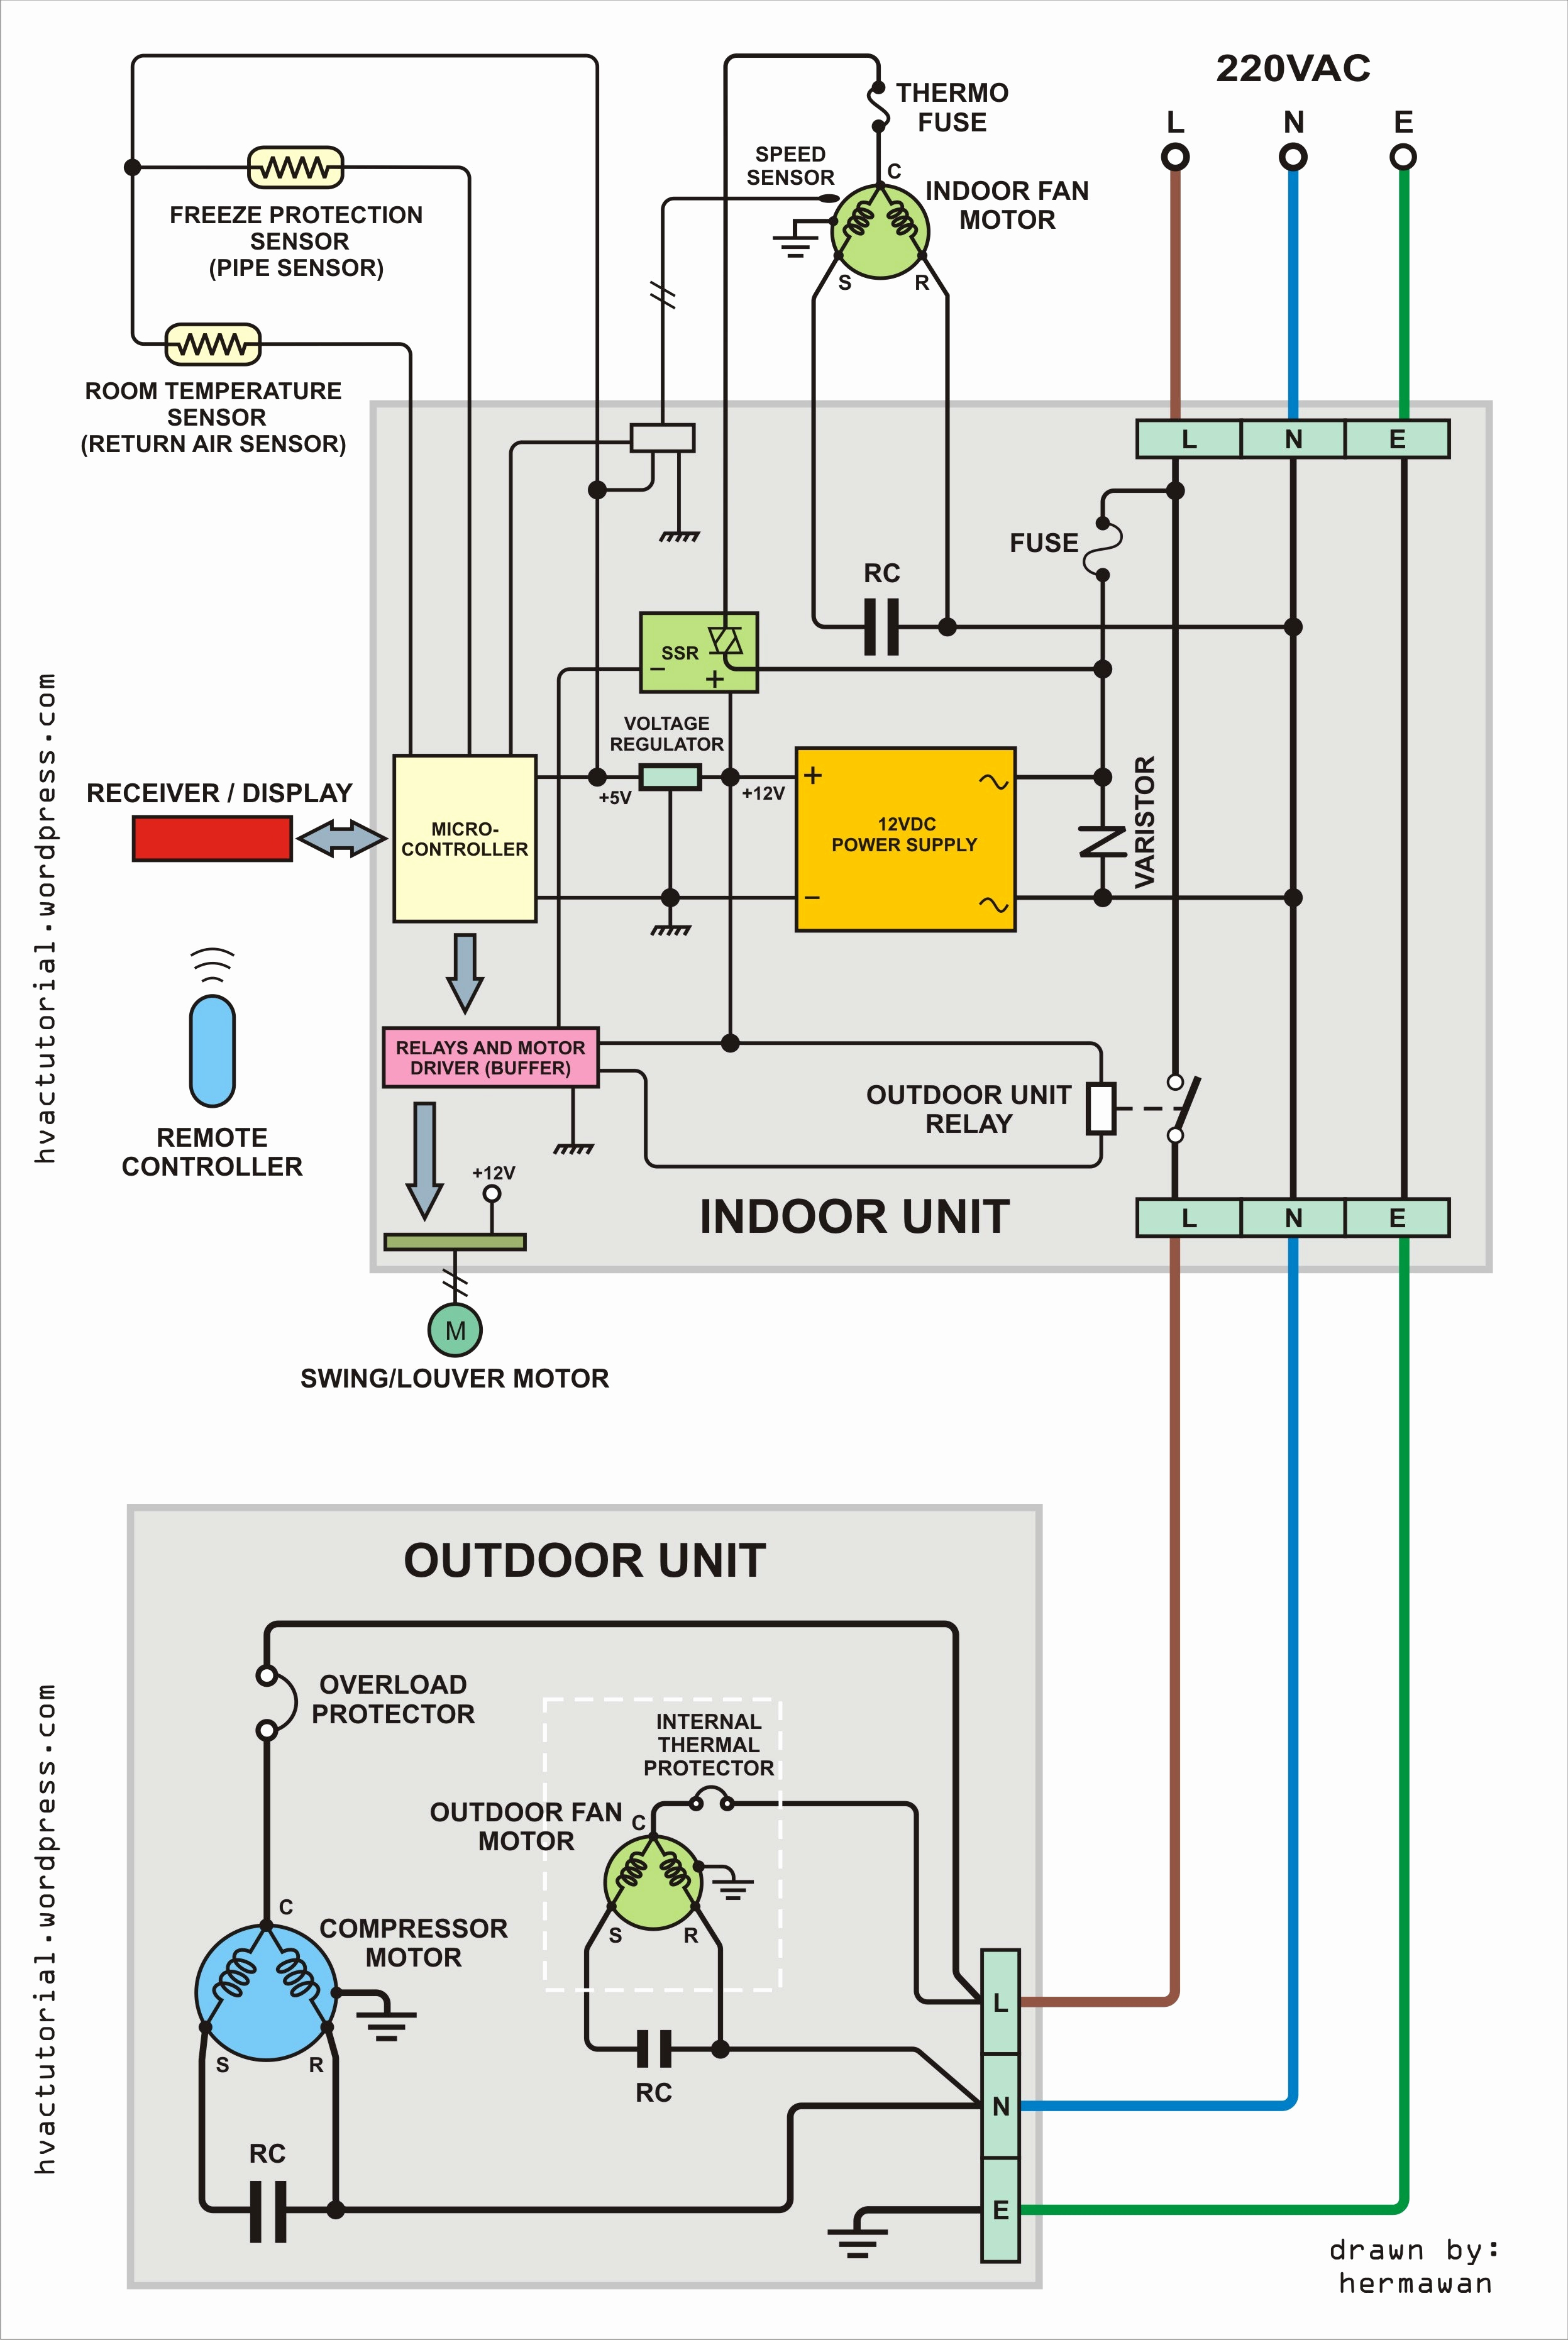 ac unit wiring diagram wiring diagrams best controller wiring ac unit wiring diagram data package ac unit wiring diagram ac control unit wiring